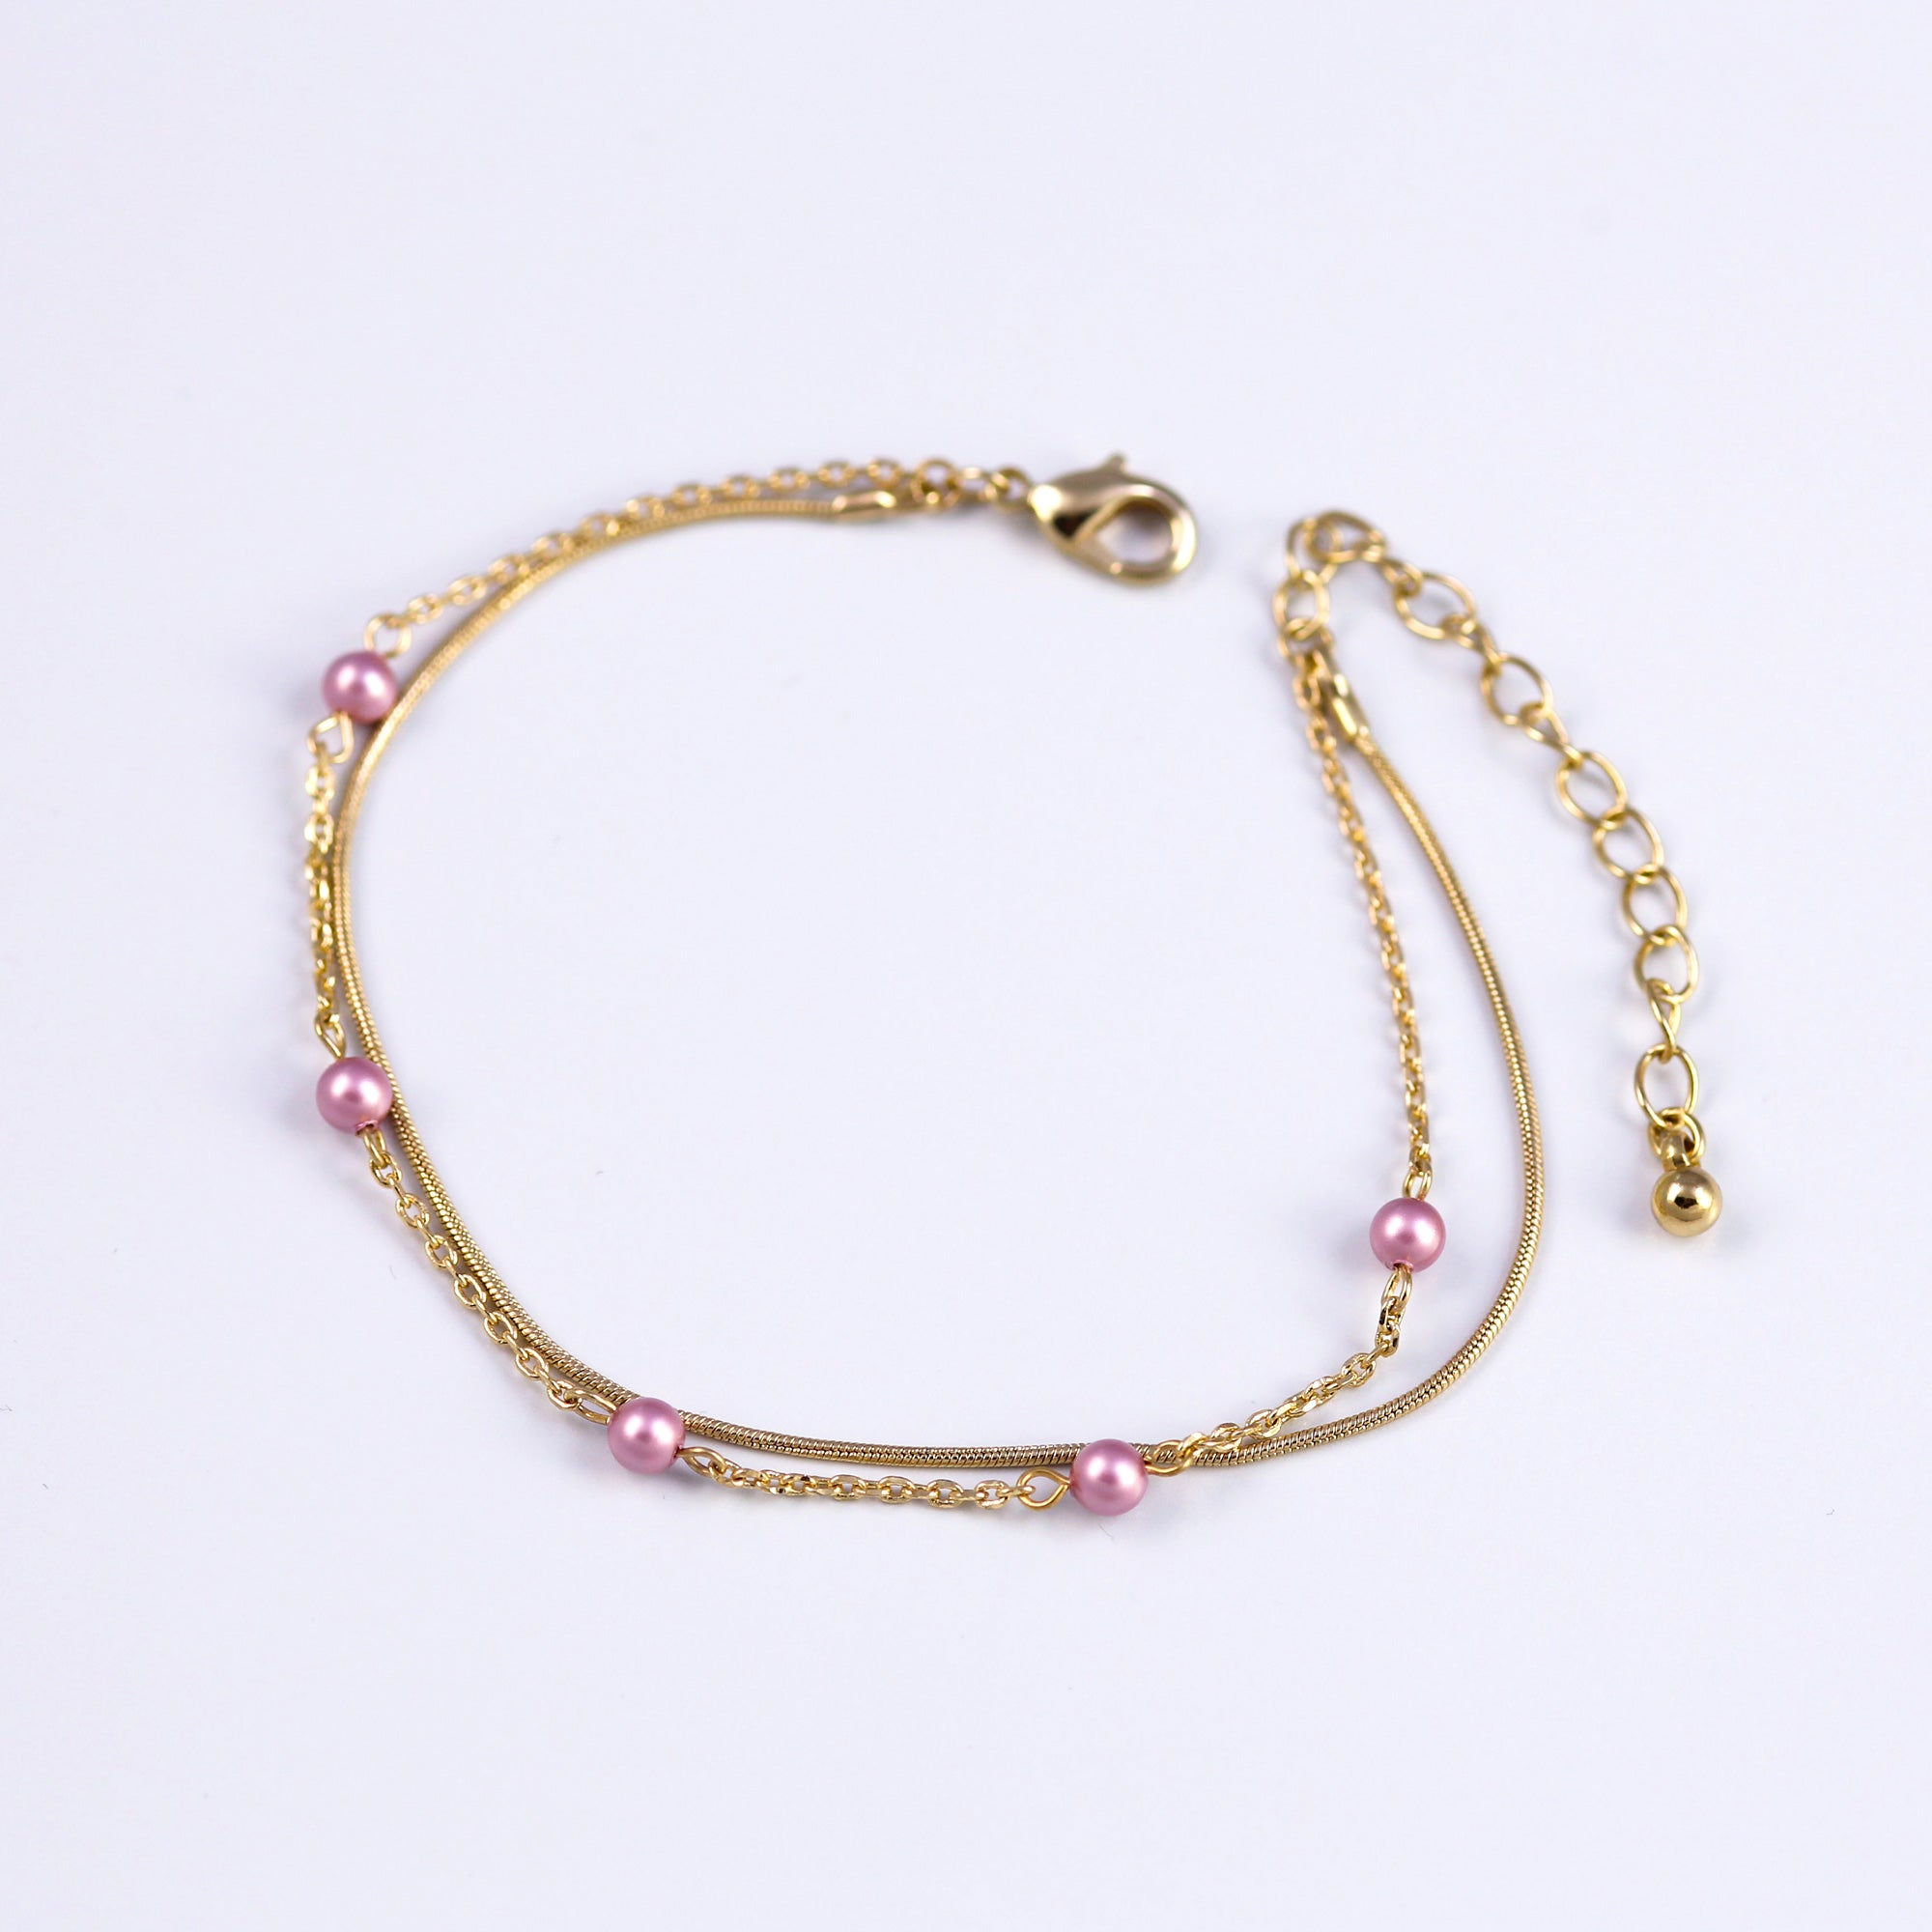 Delicate Gold Bracelet with Crystal Powder Pearls